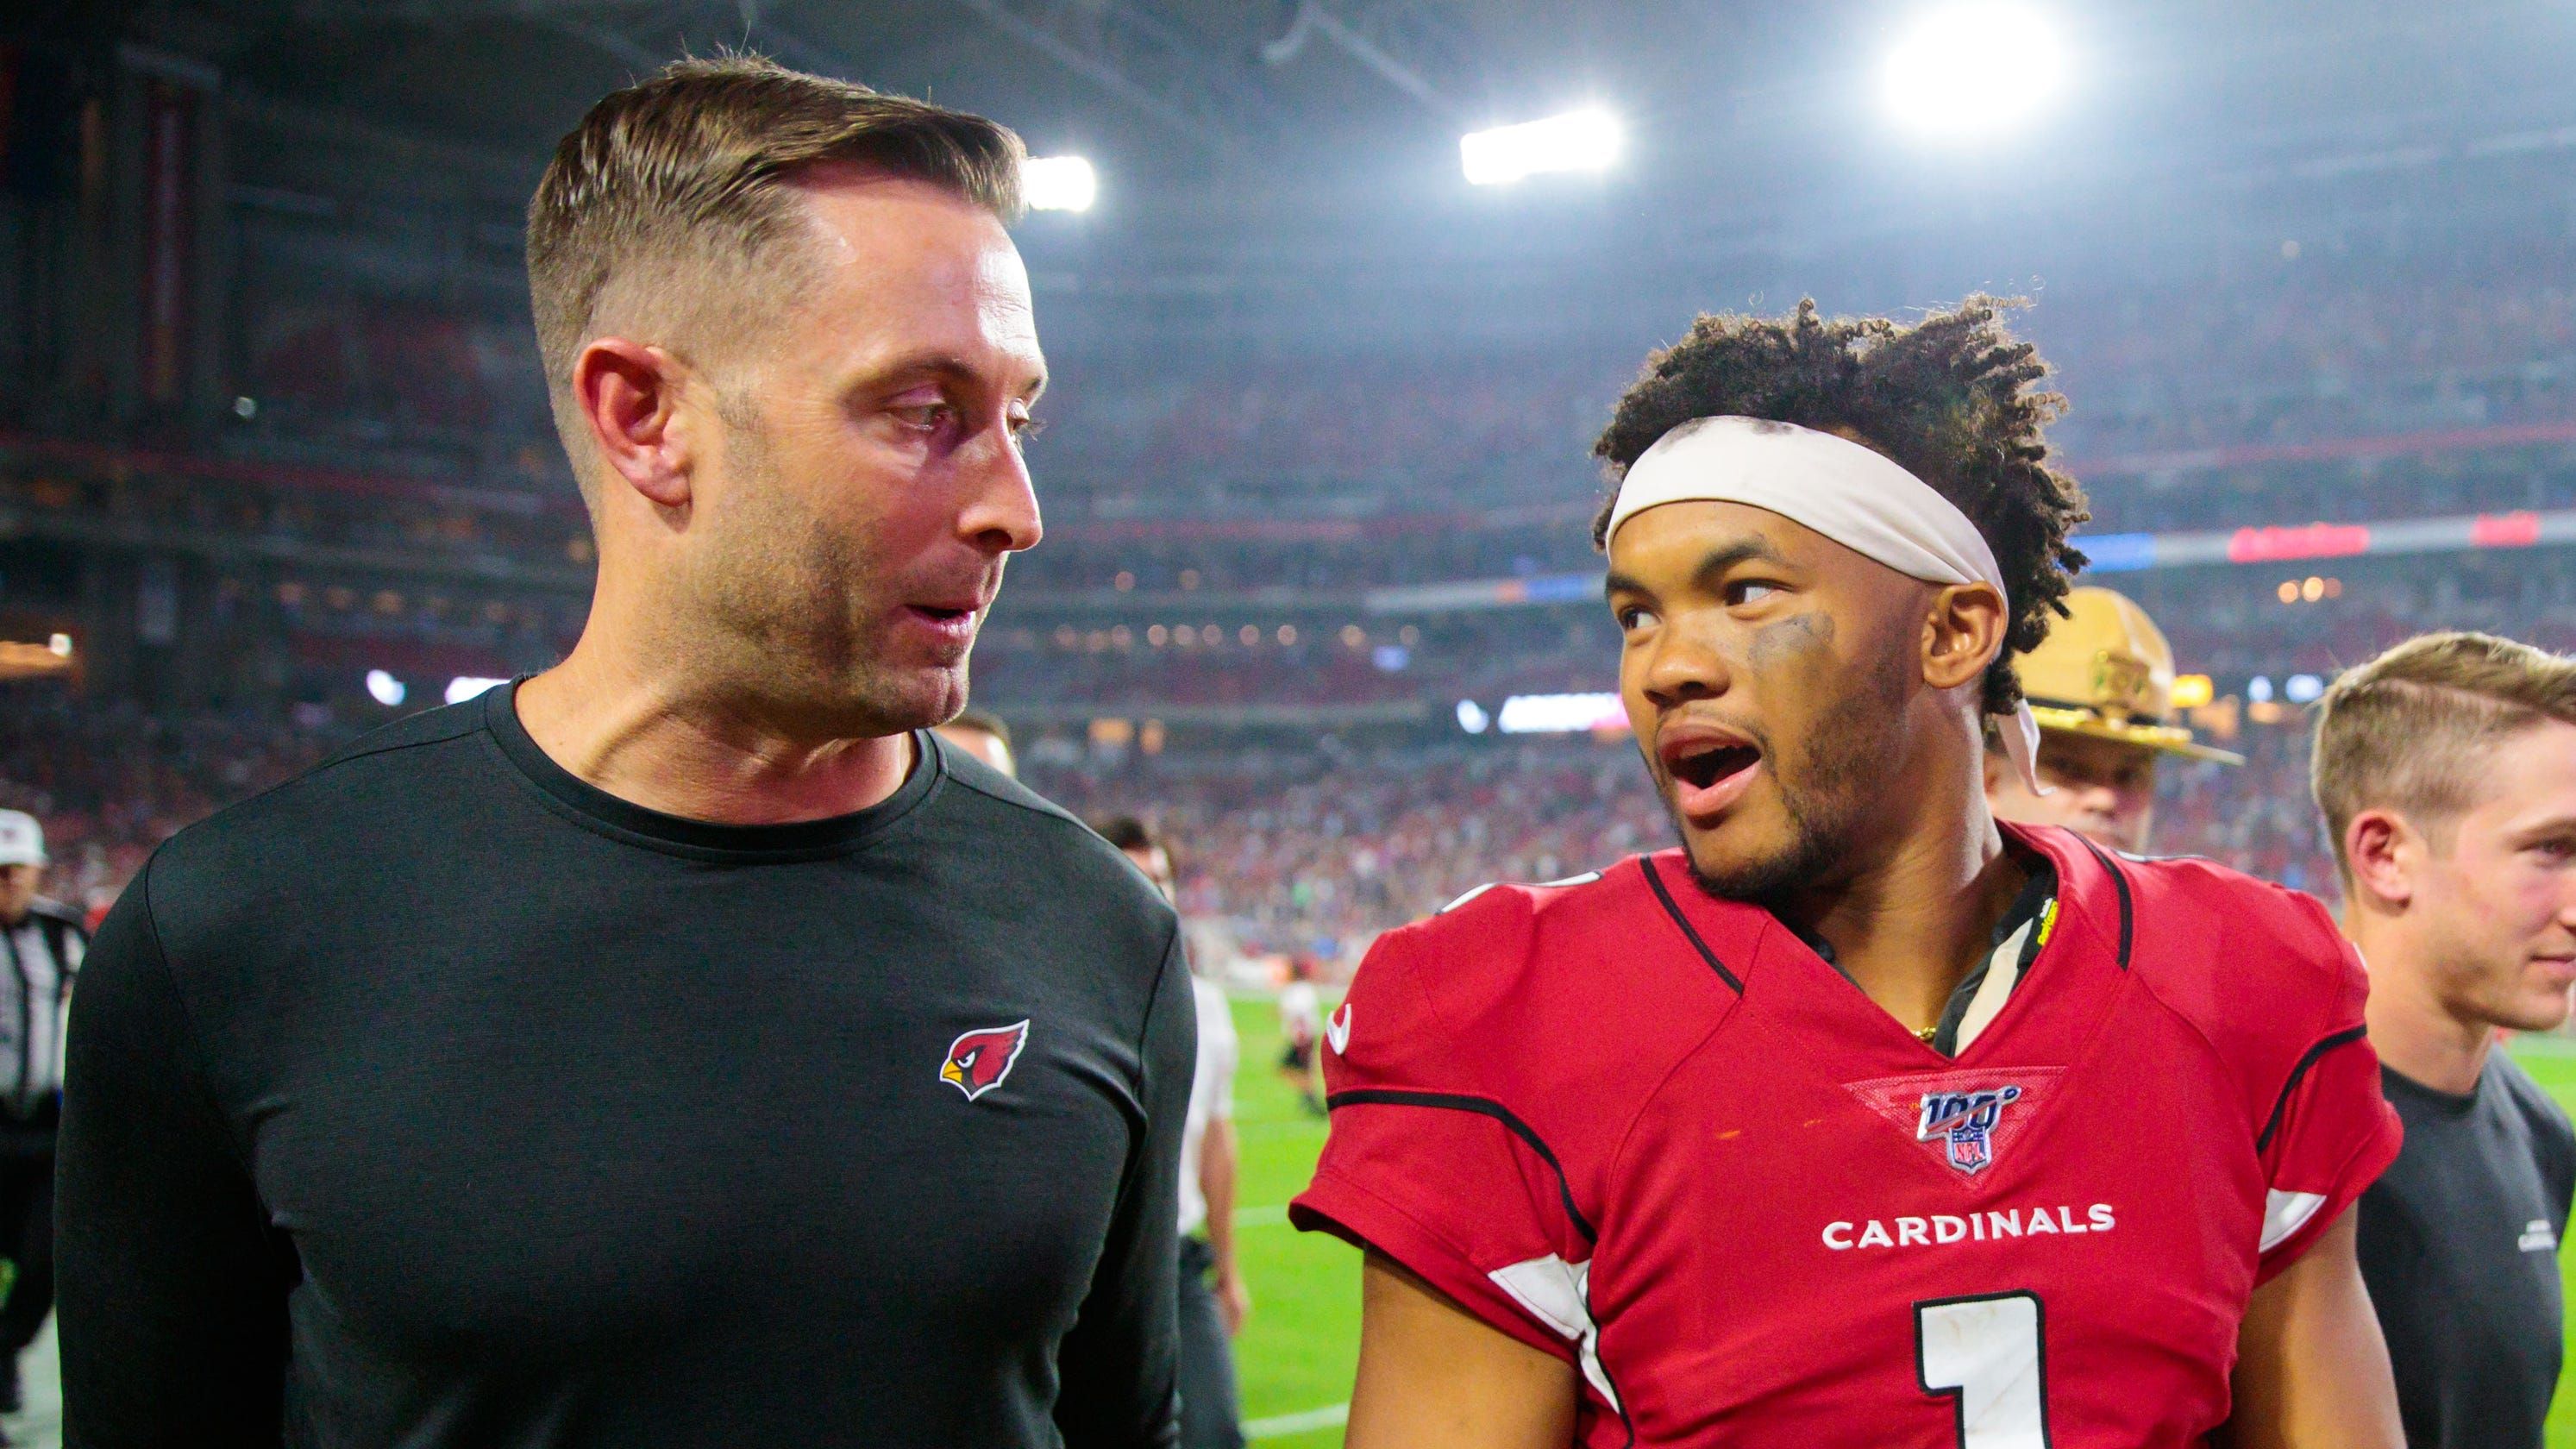 6deb5e99 Cardinals: 5 things we learned from Kyler Murray and Kingsbury's debut